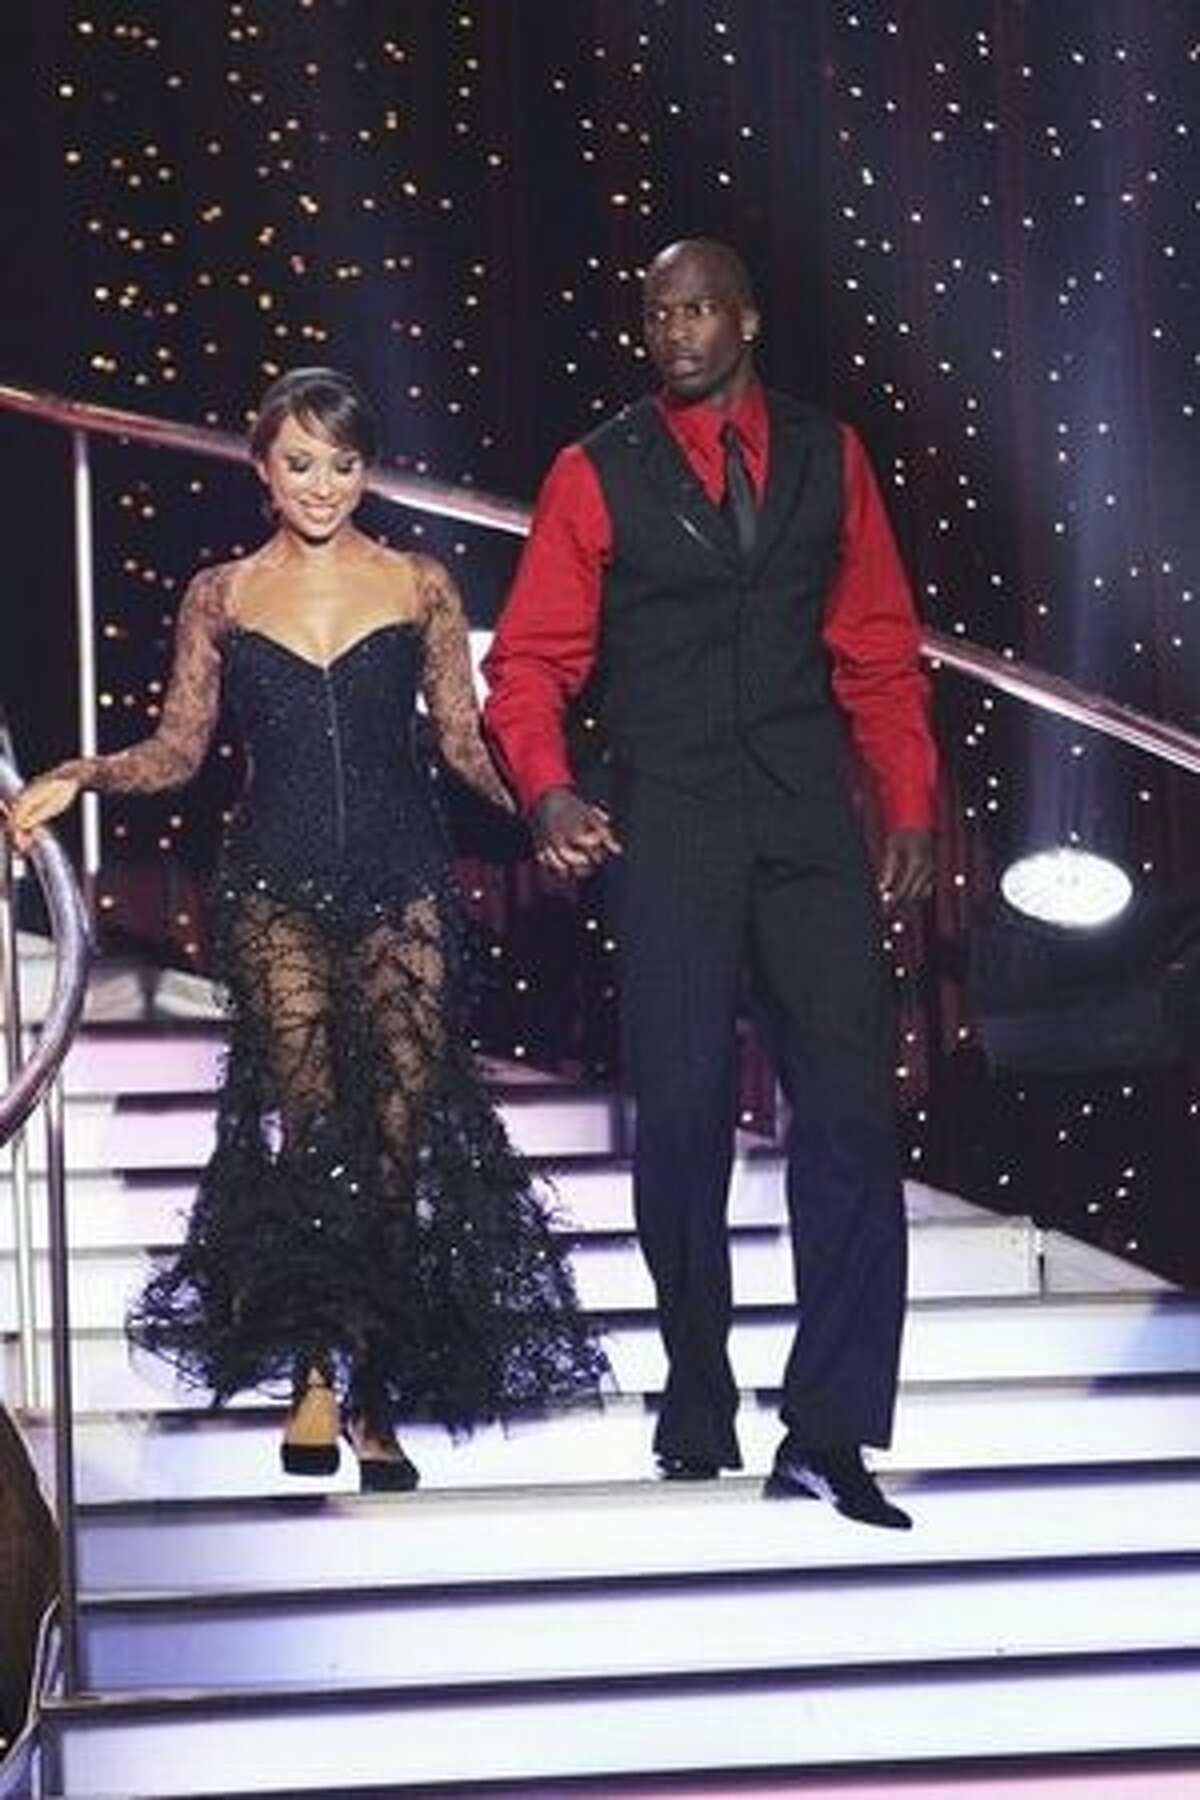 The remaining couples are: Pro football player Chad Ochocinco and his professional partner, Cheryl Burke;